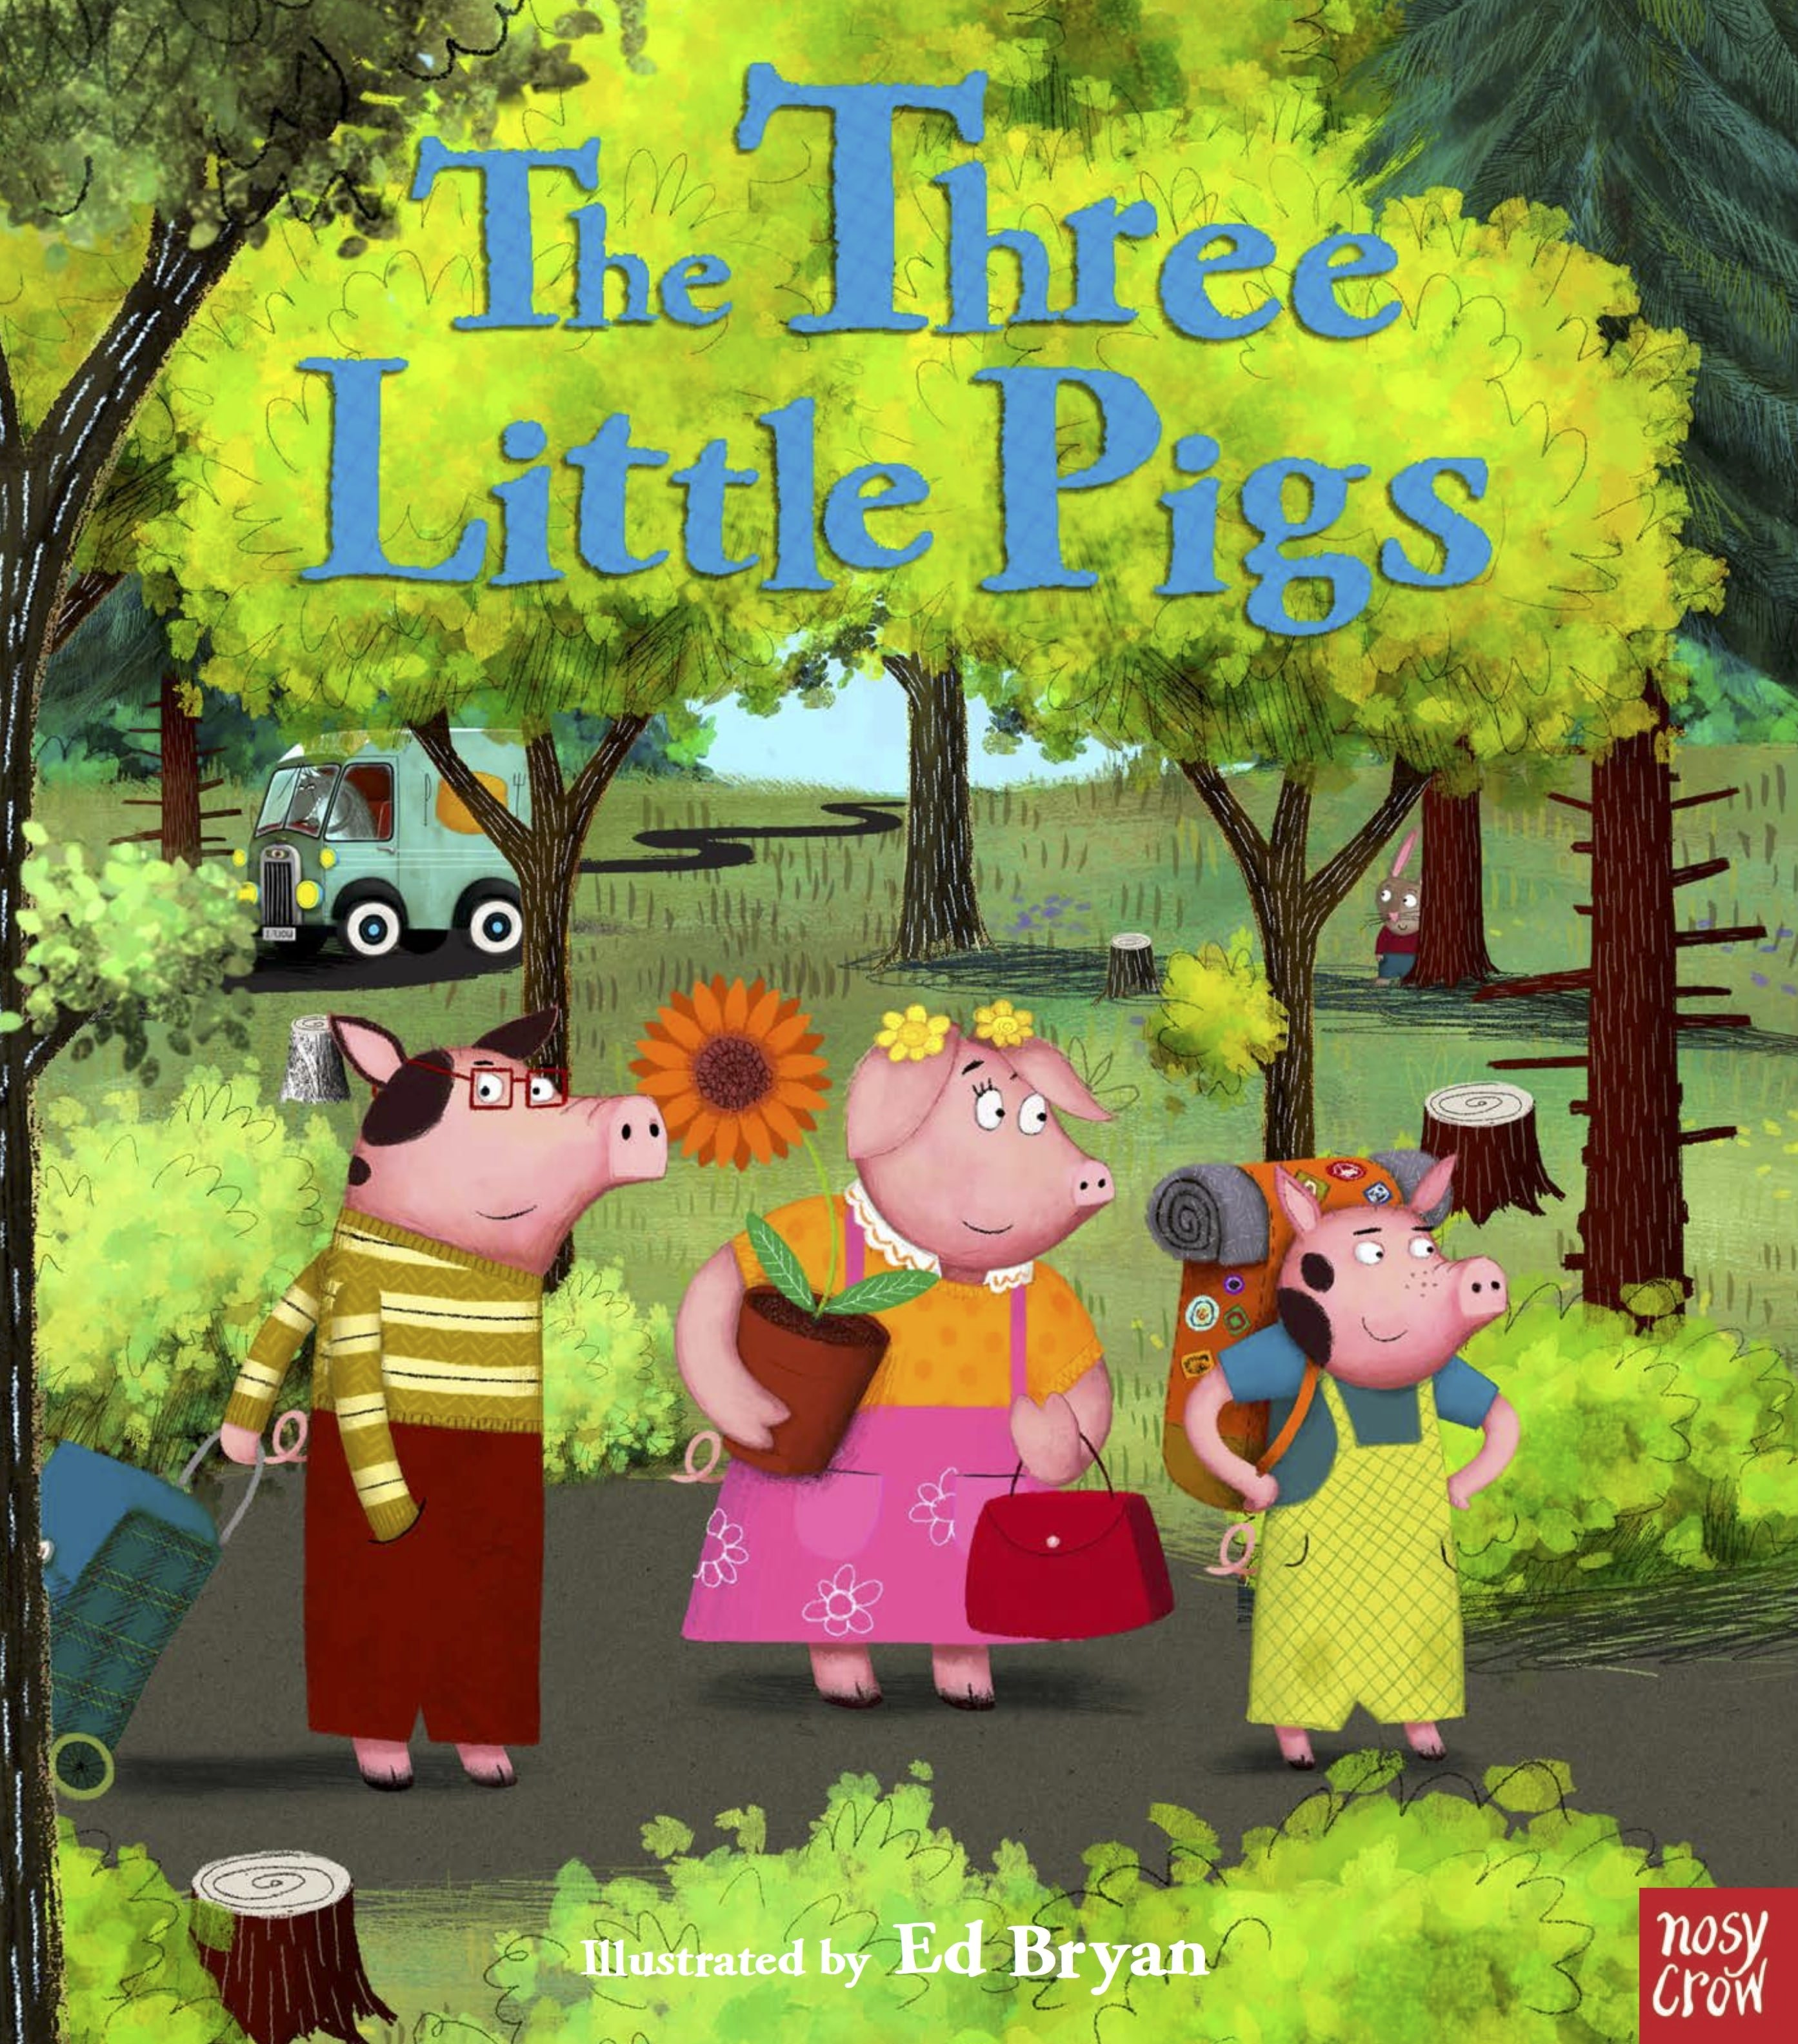 The Three Little Pigs by Nosy Crow, illustrated by Ed Bryan